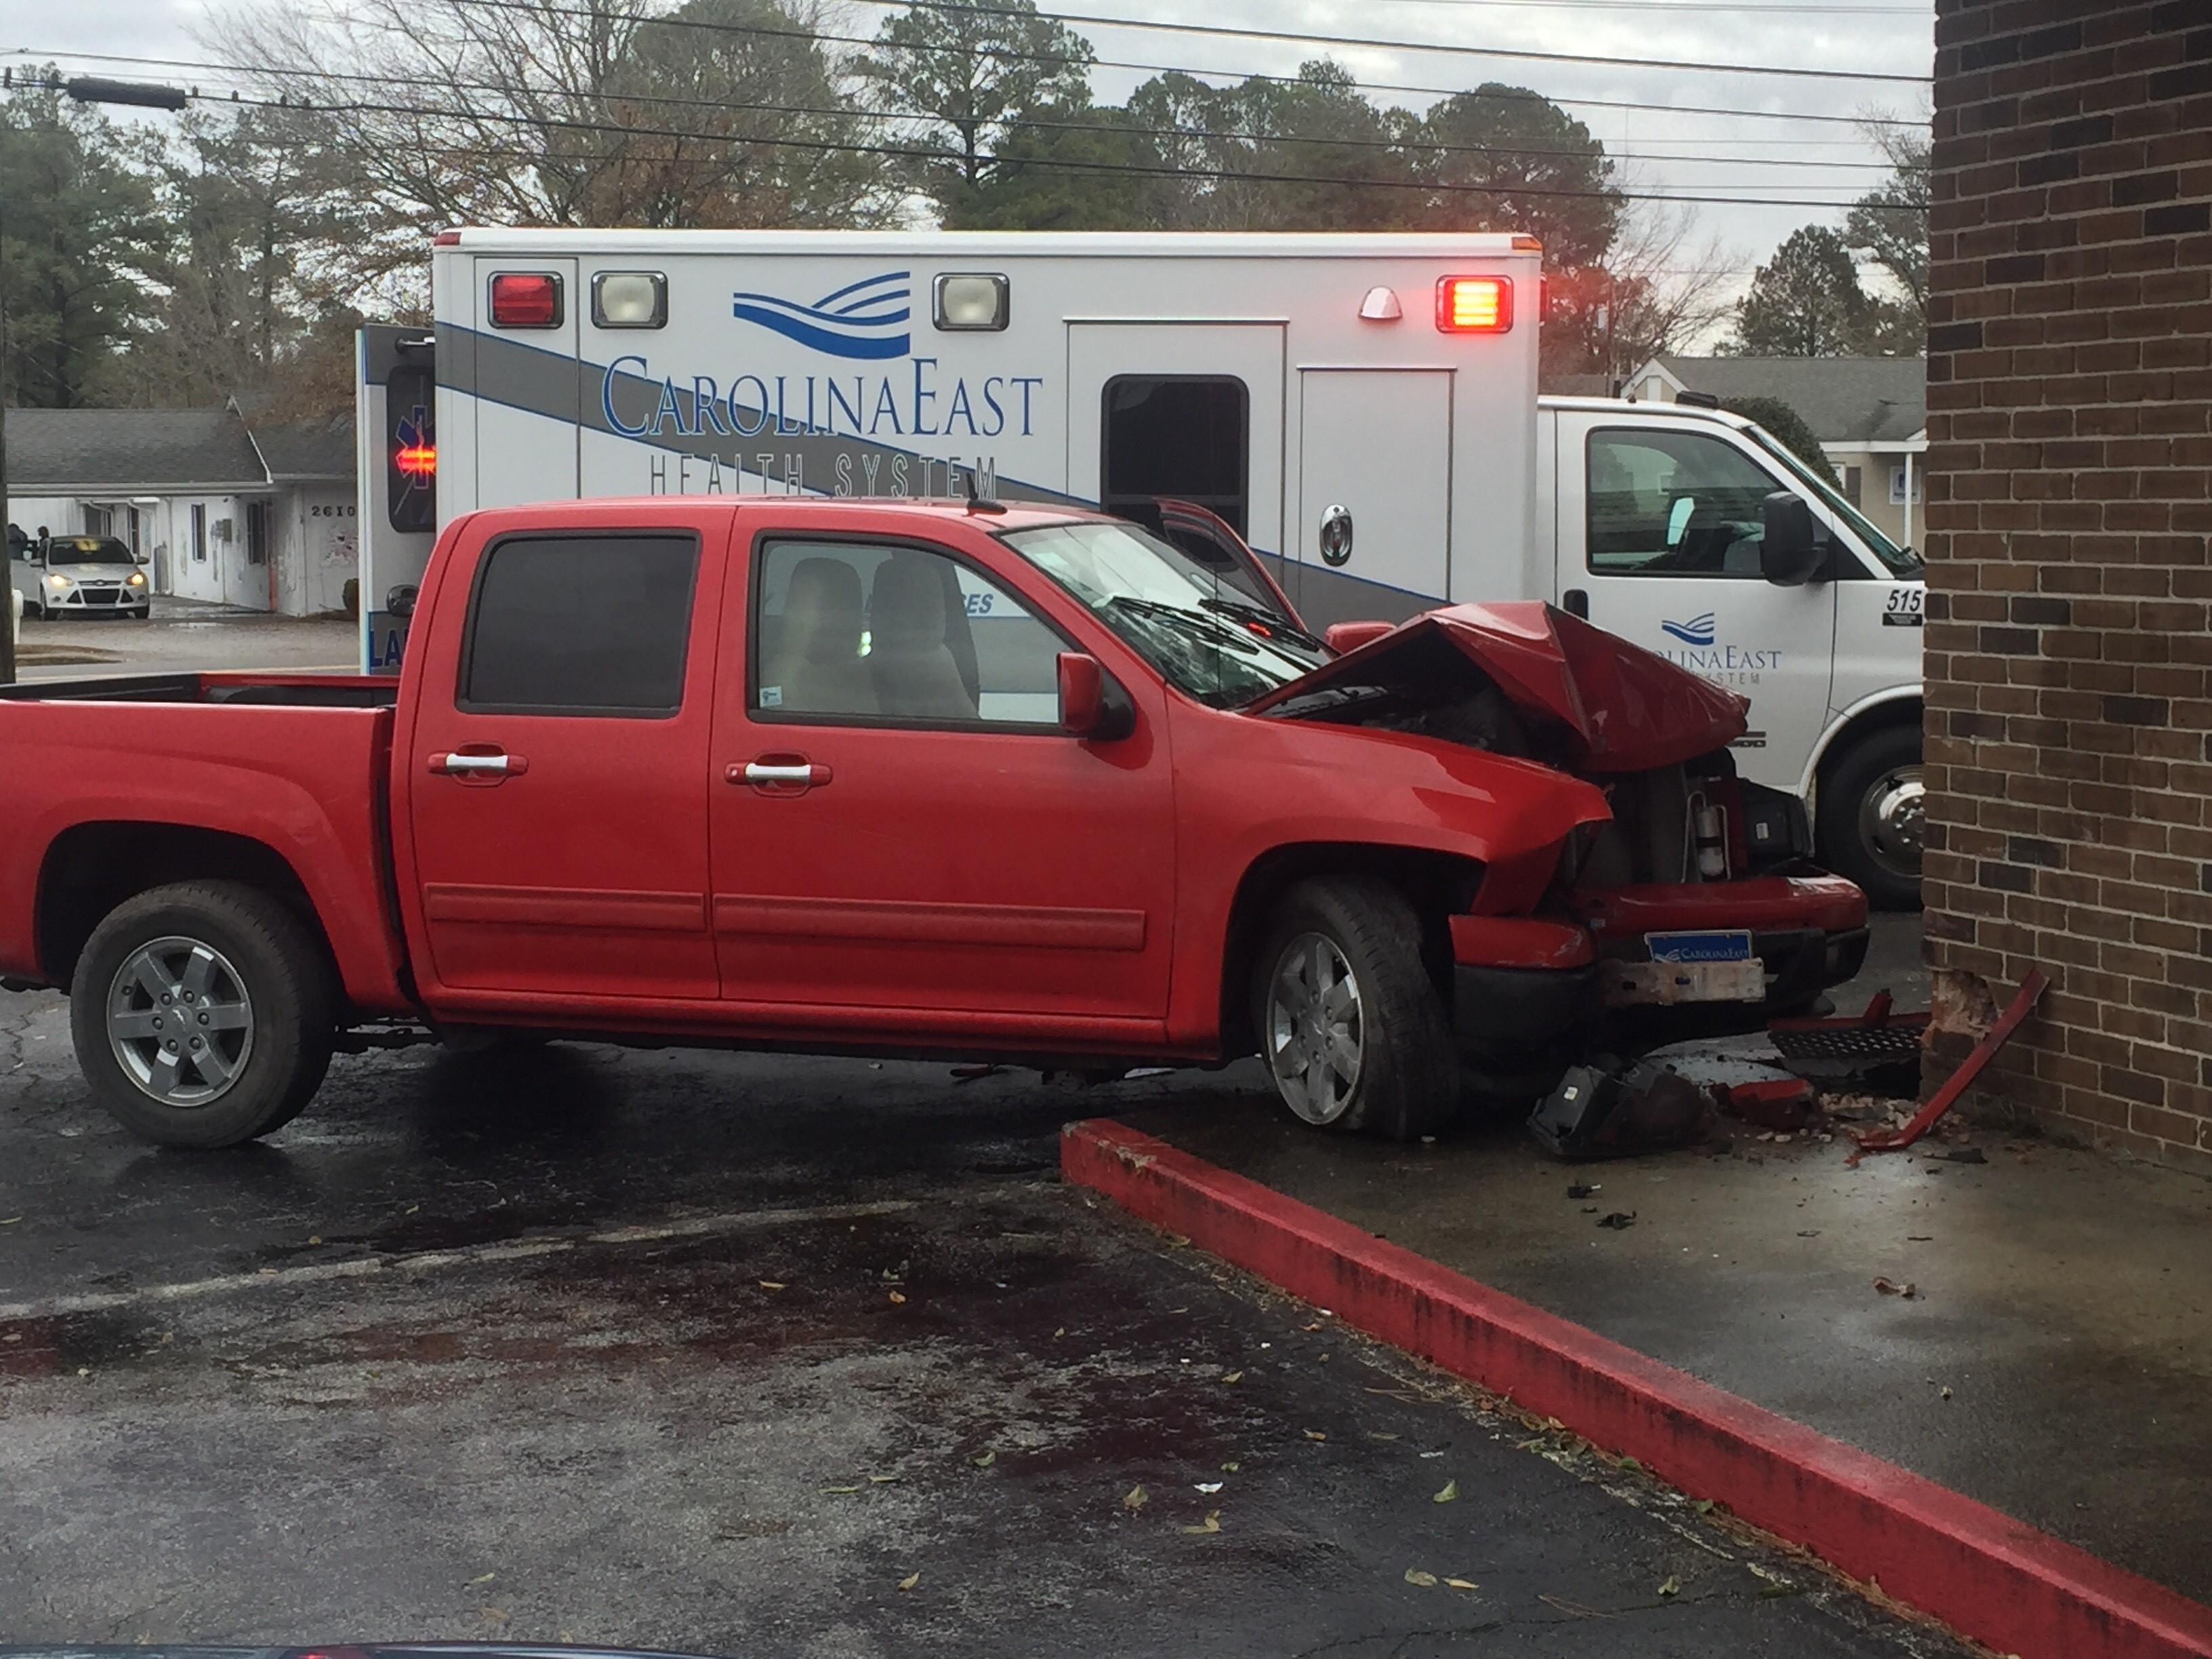 A driver suffering from a diabetic episode crashed into World Fashions clothing store on Neuse Blvd early January 23, 2018.<p></p>